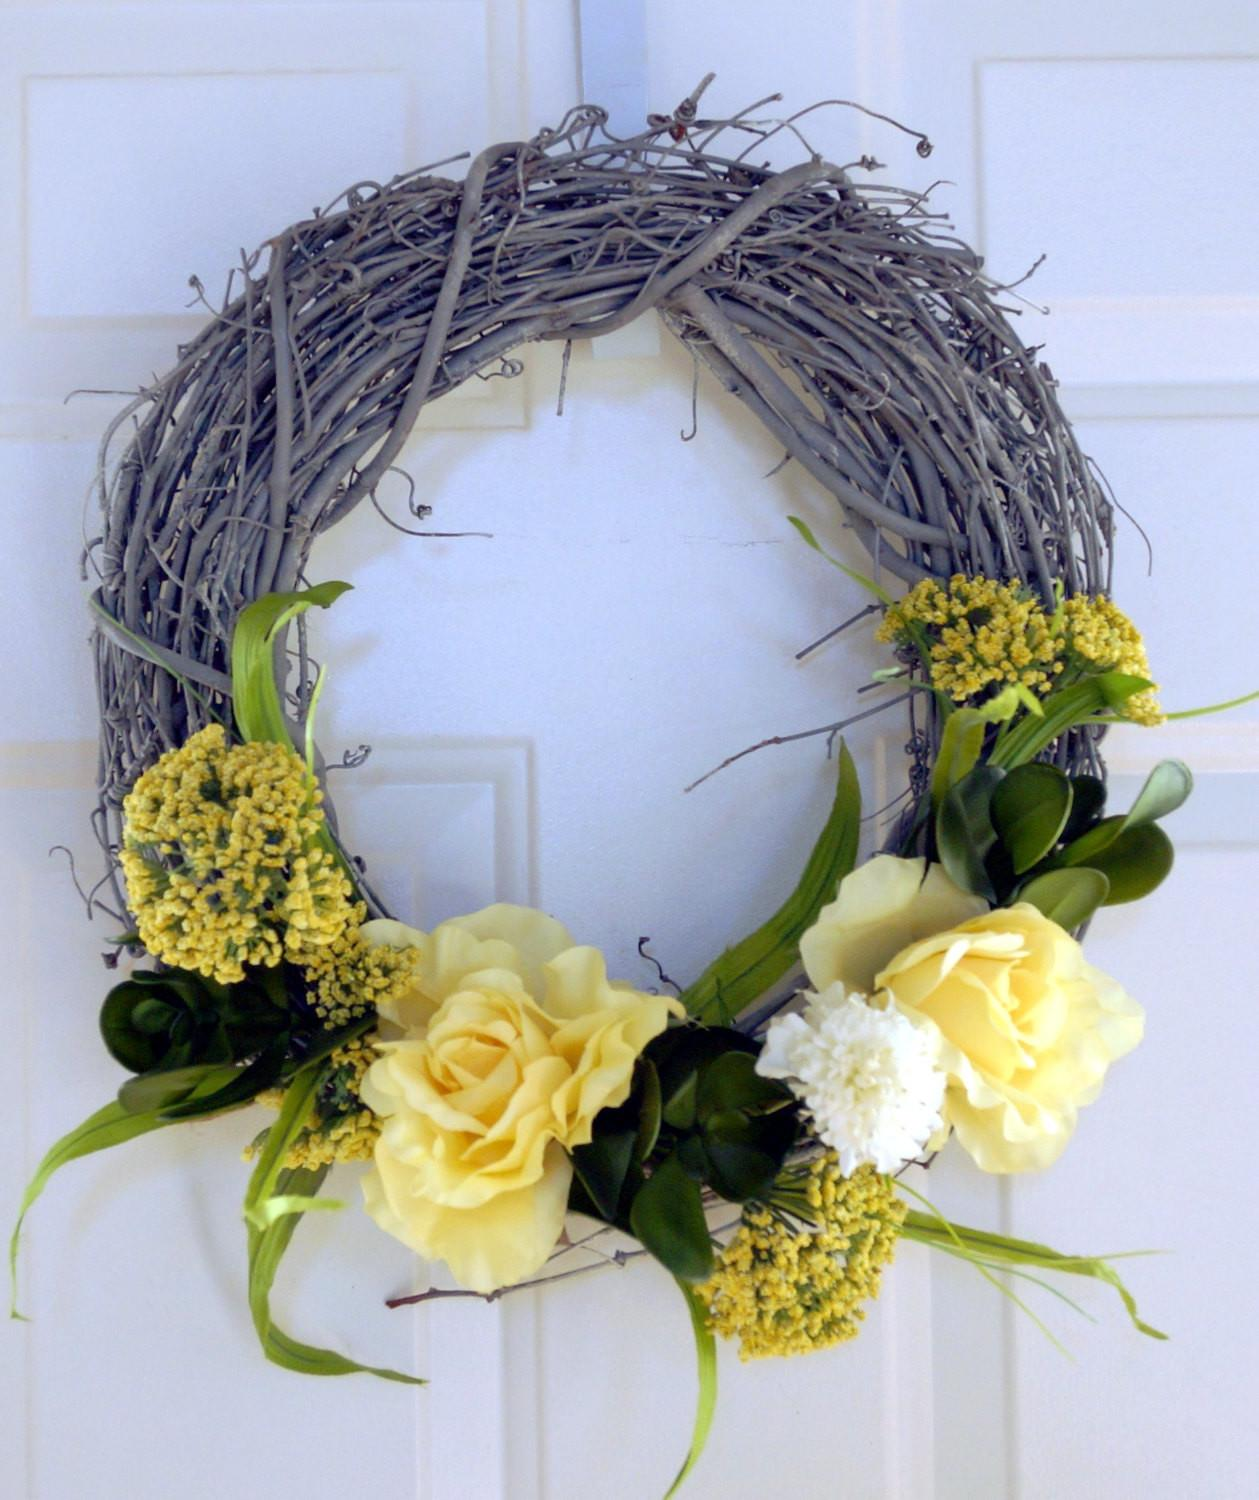 Summer Wreathwedding Flowers Wreath Whimsical Hobby4crafts